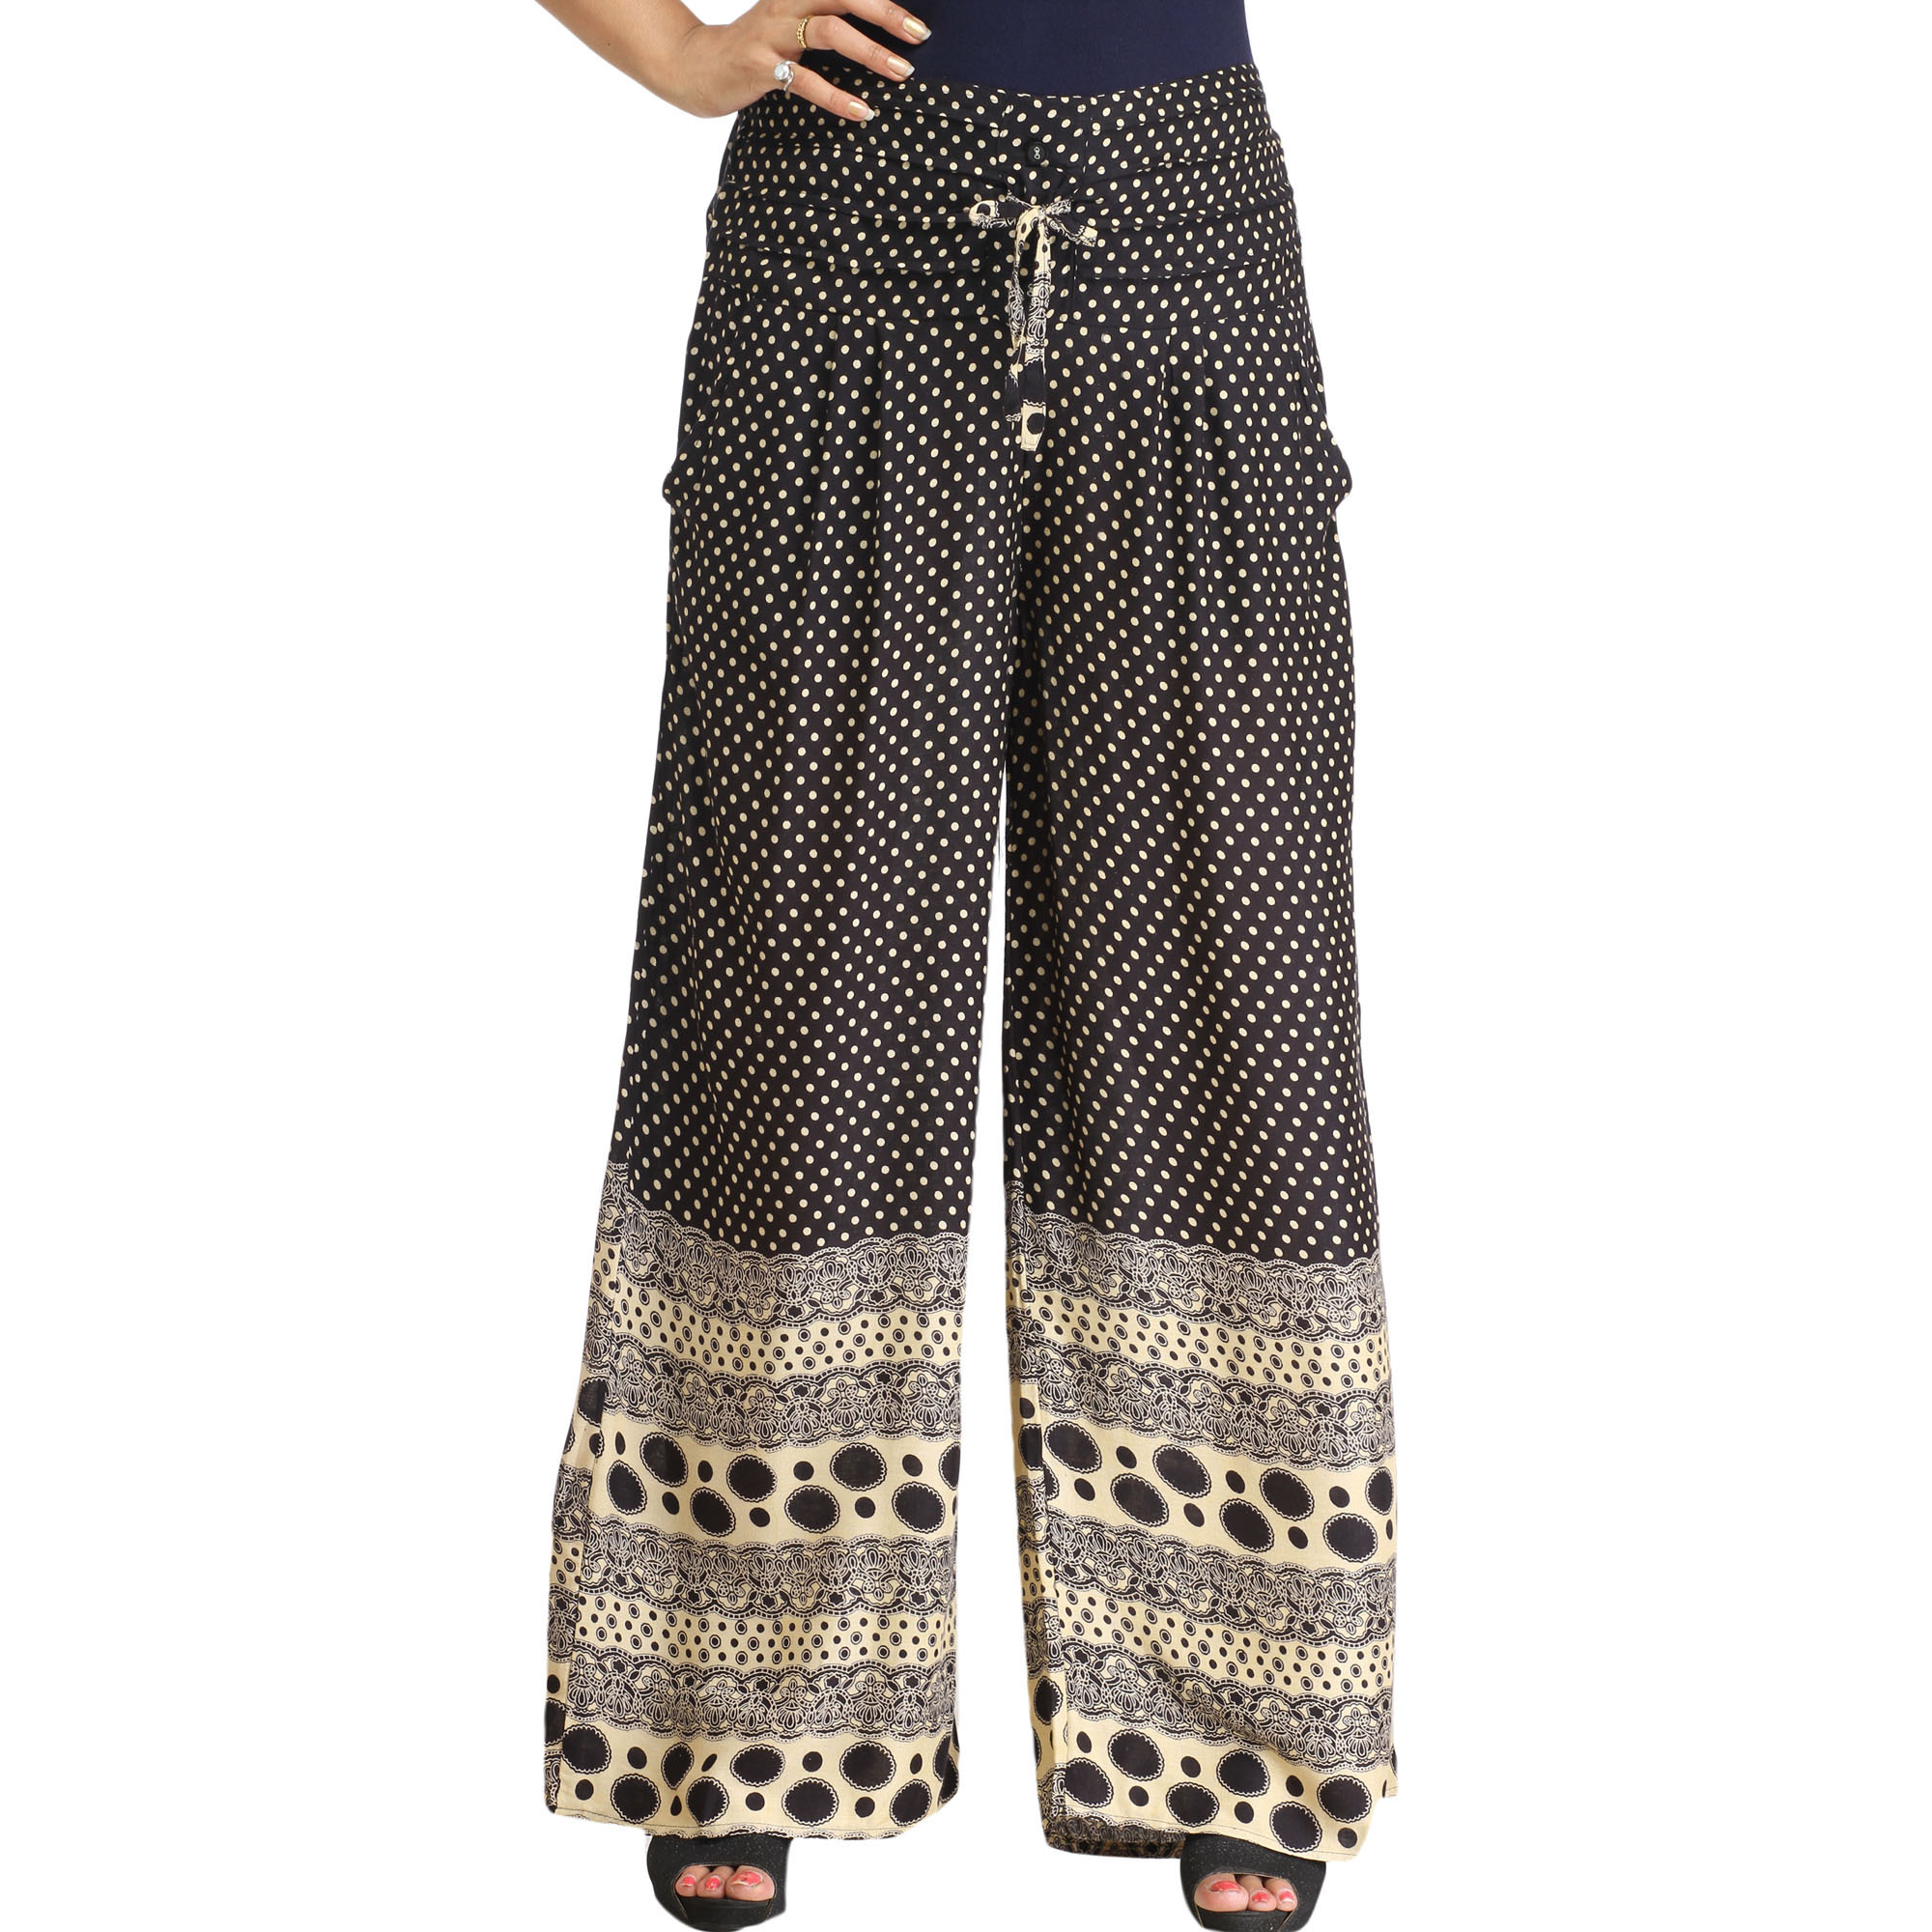 Black and Cream Casual Palazzo Pants with Printed Polka Dots and Side Pockets